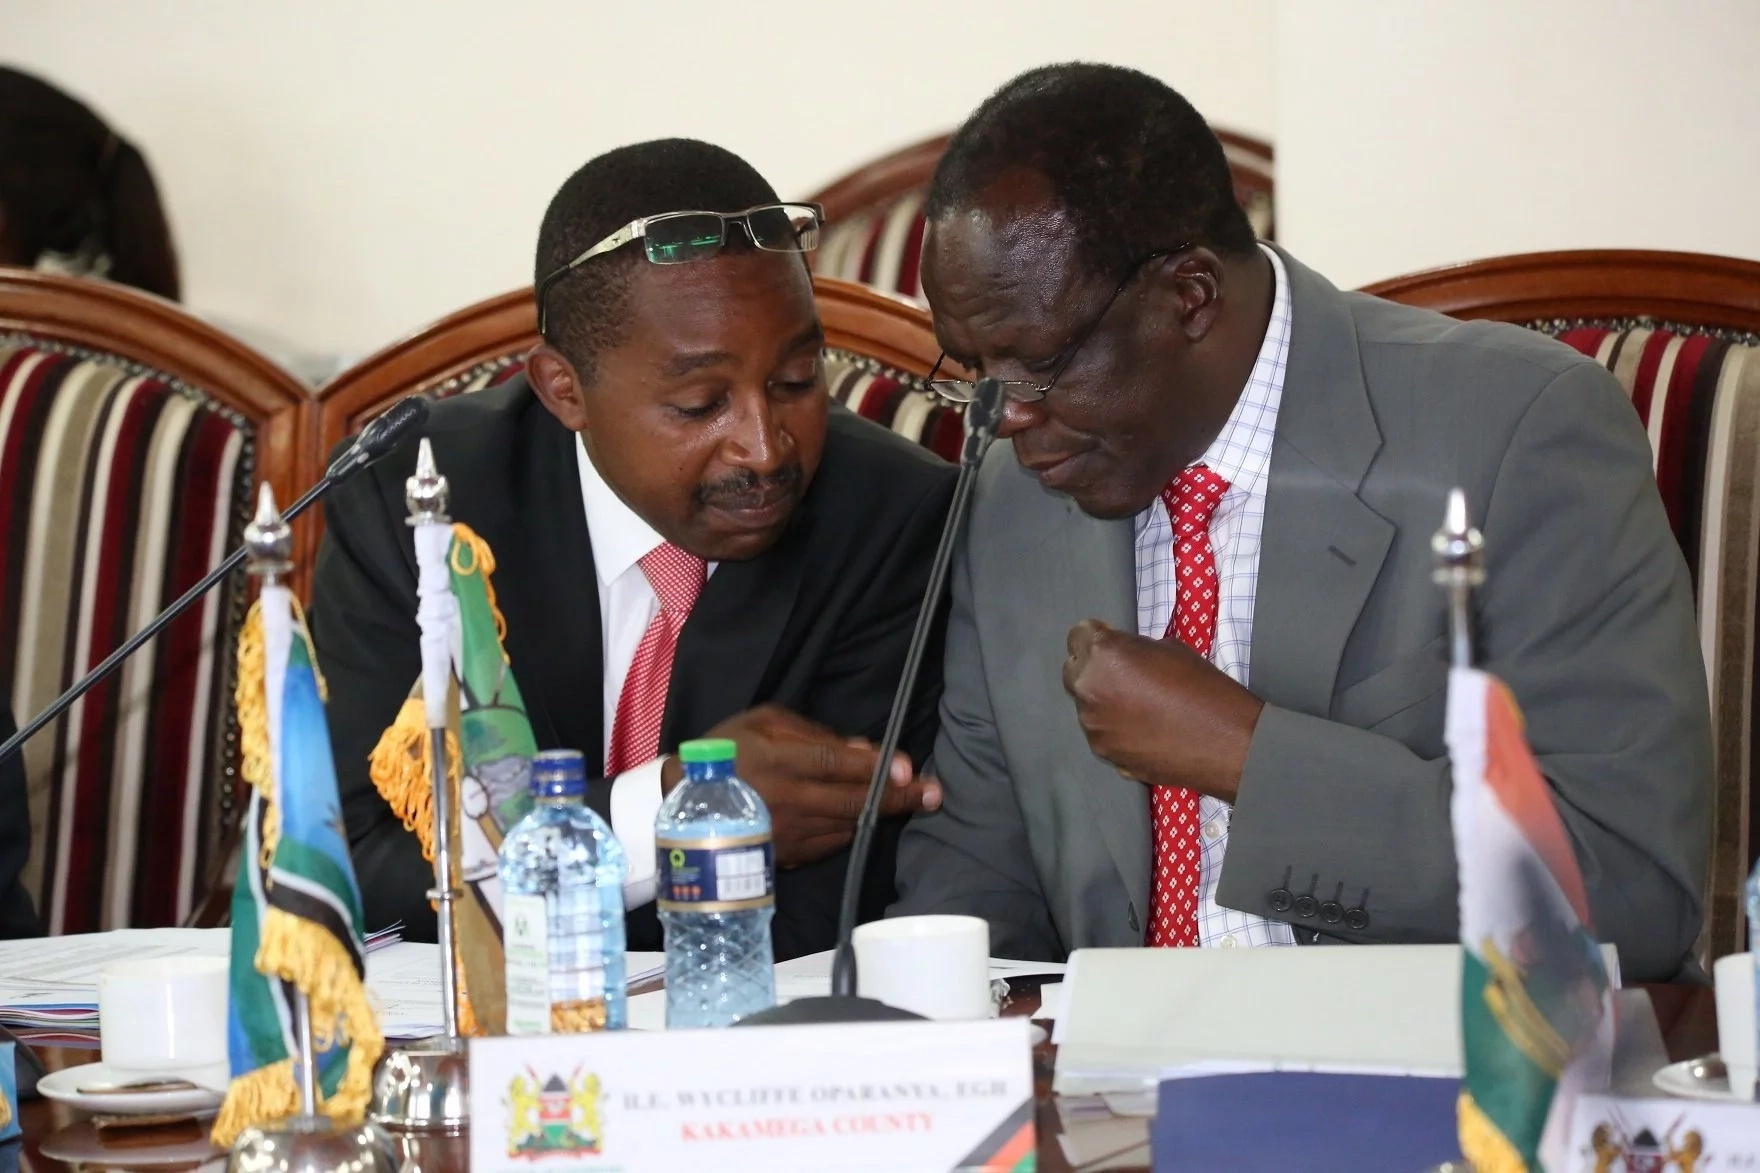 We will not stand by and watch as Kenya is torn apart by ethnicity and tribal politics - Governors